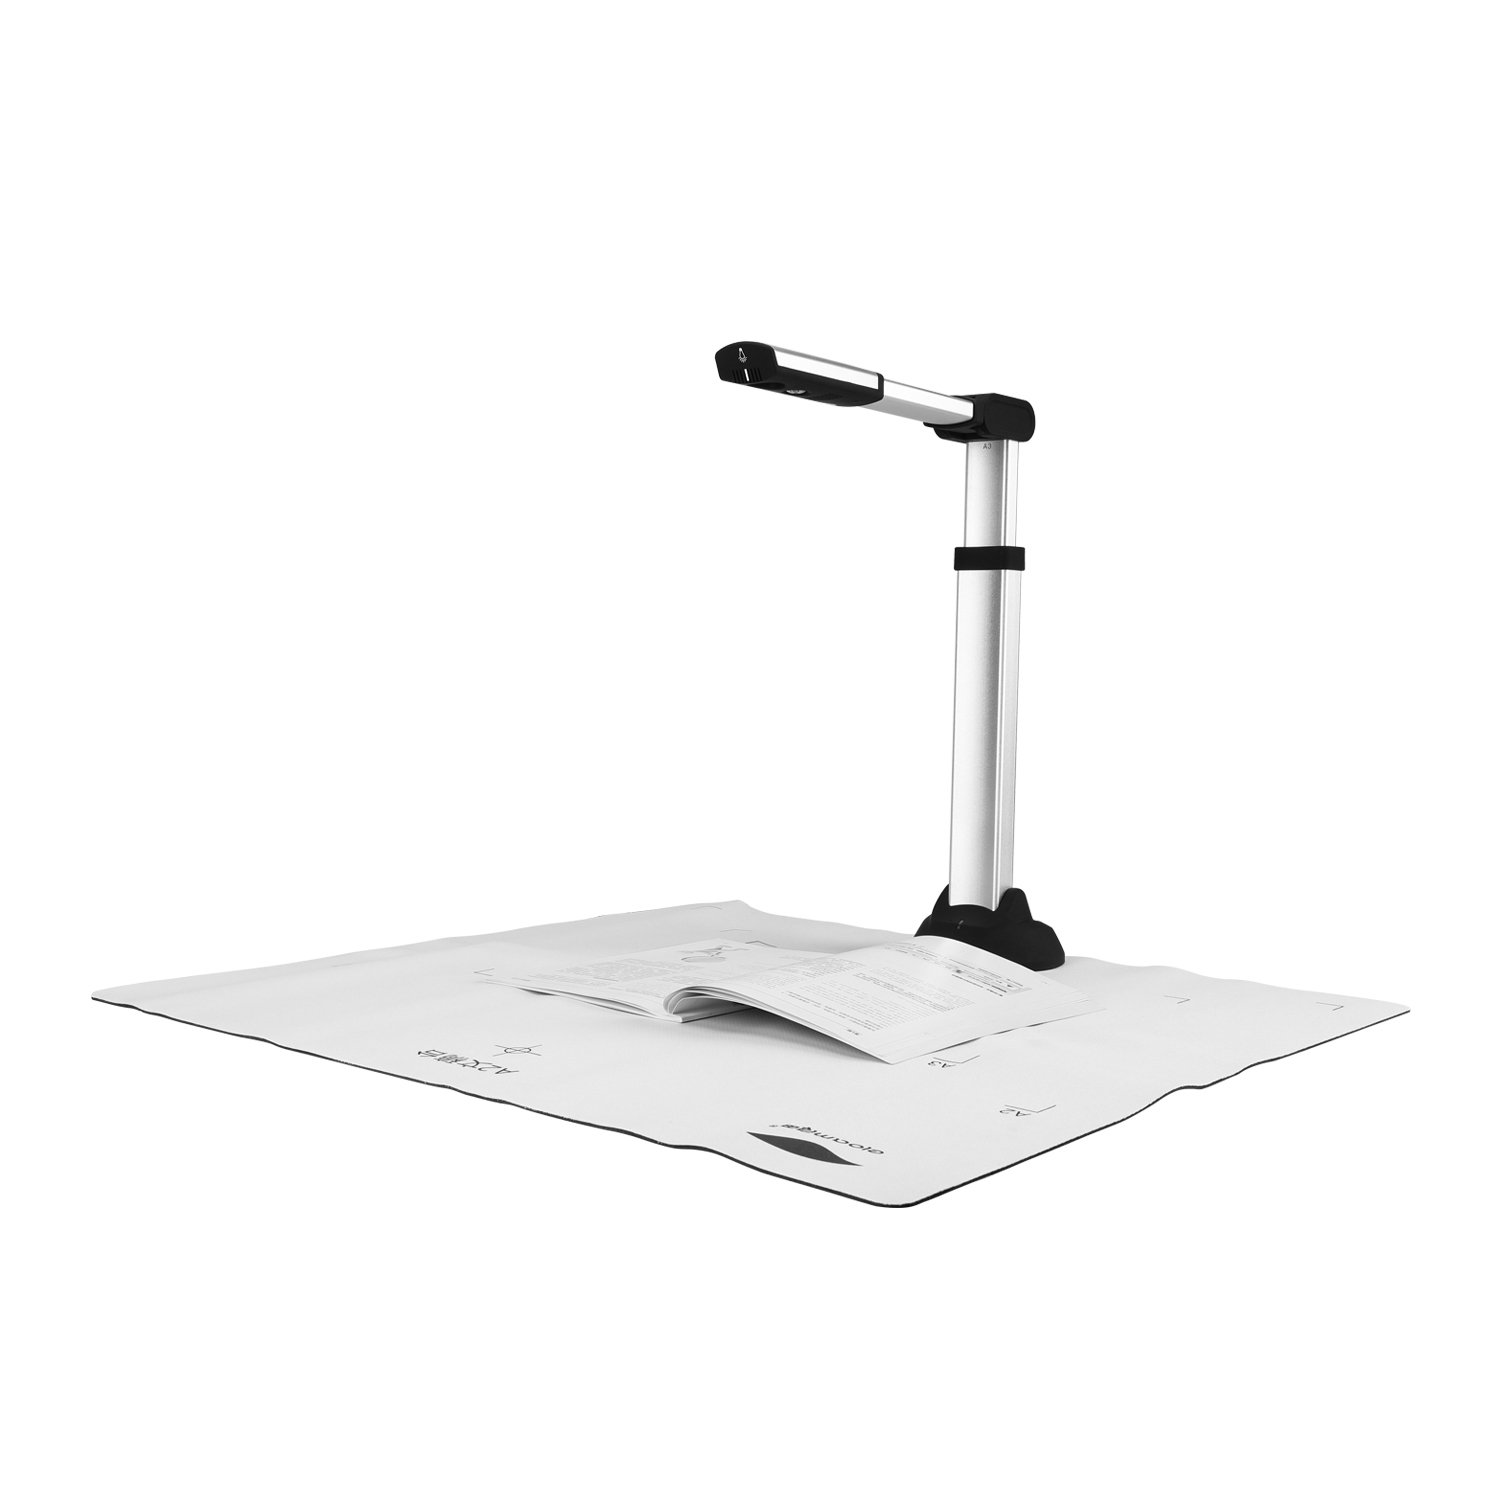 eloam Document Camera with HD CMOS Sensor and OCR Function Time Shooting for Office, Classrooms, Labs, Meeting Room Shooting for Office, Classrooms, Labs, Meeting Room by eloam